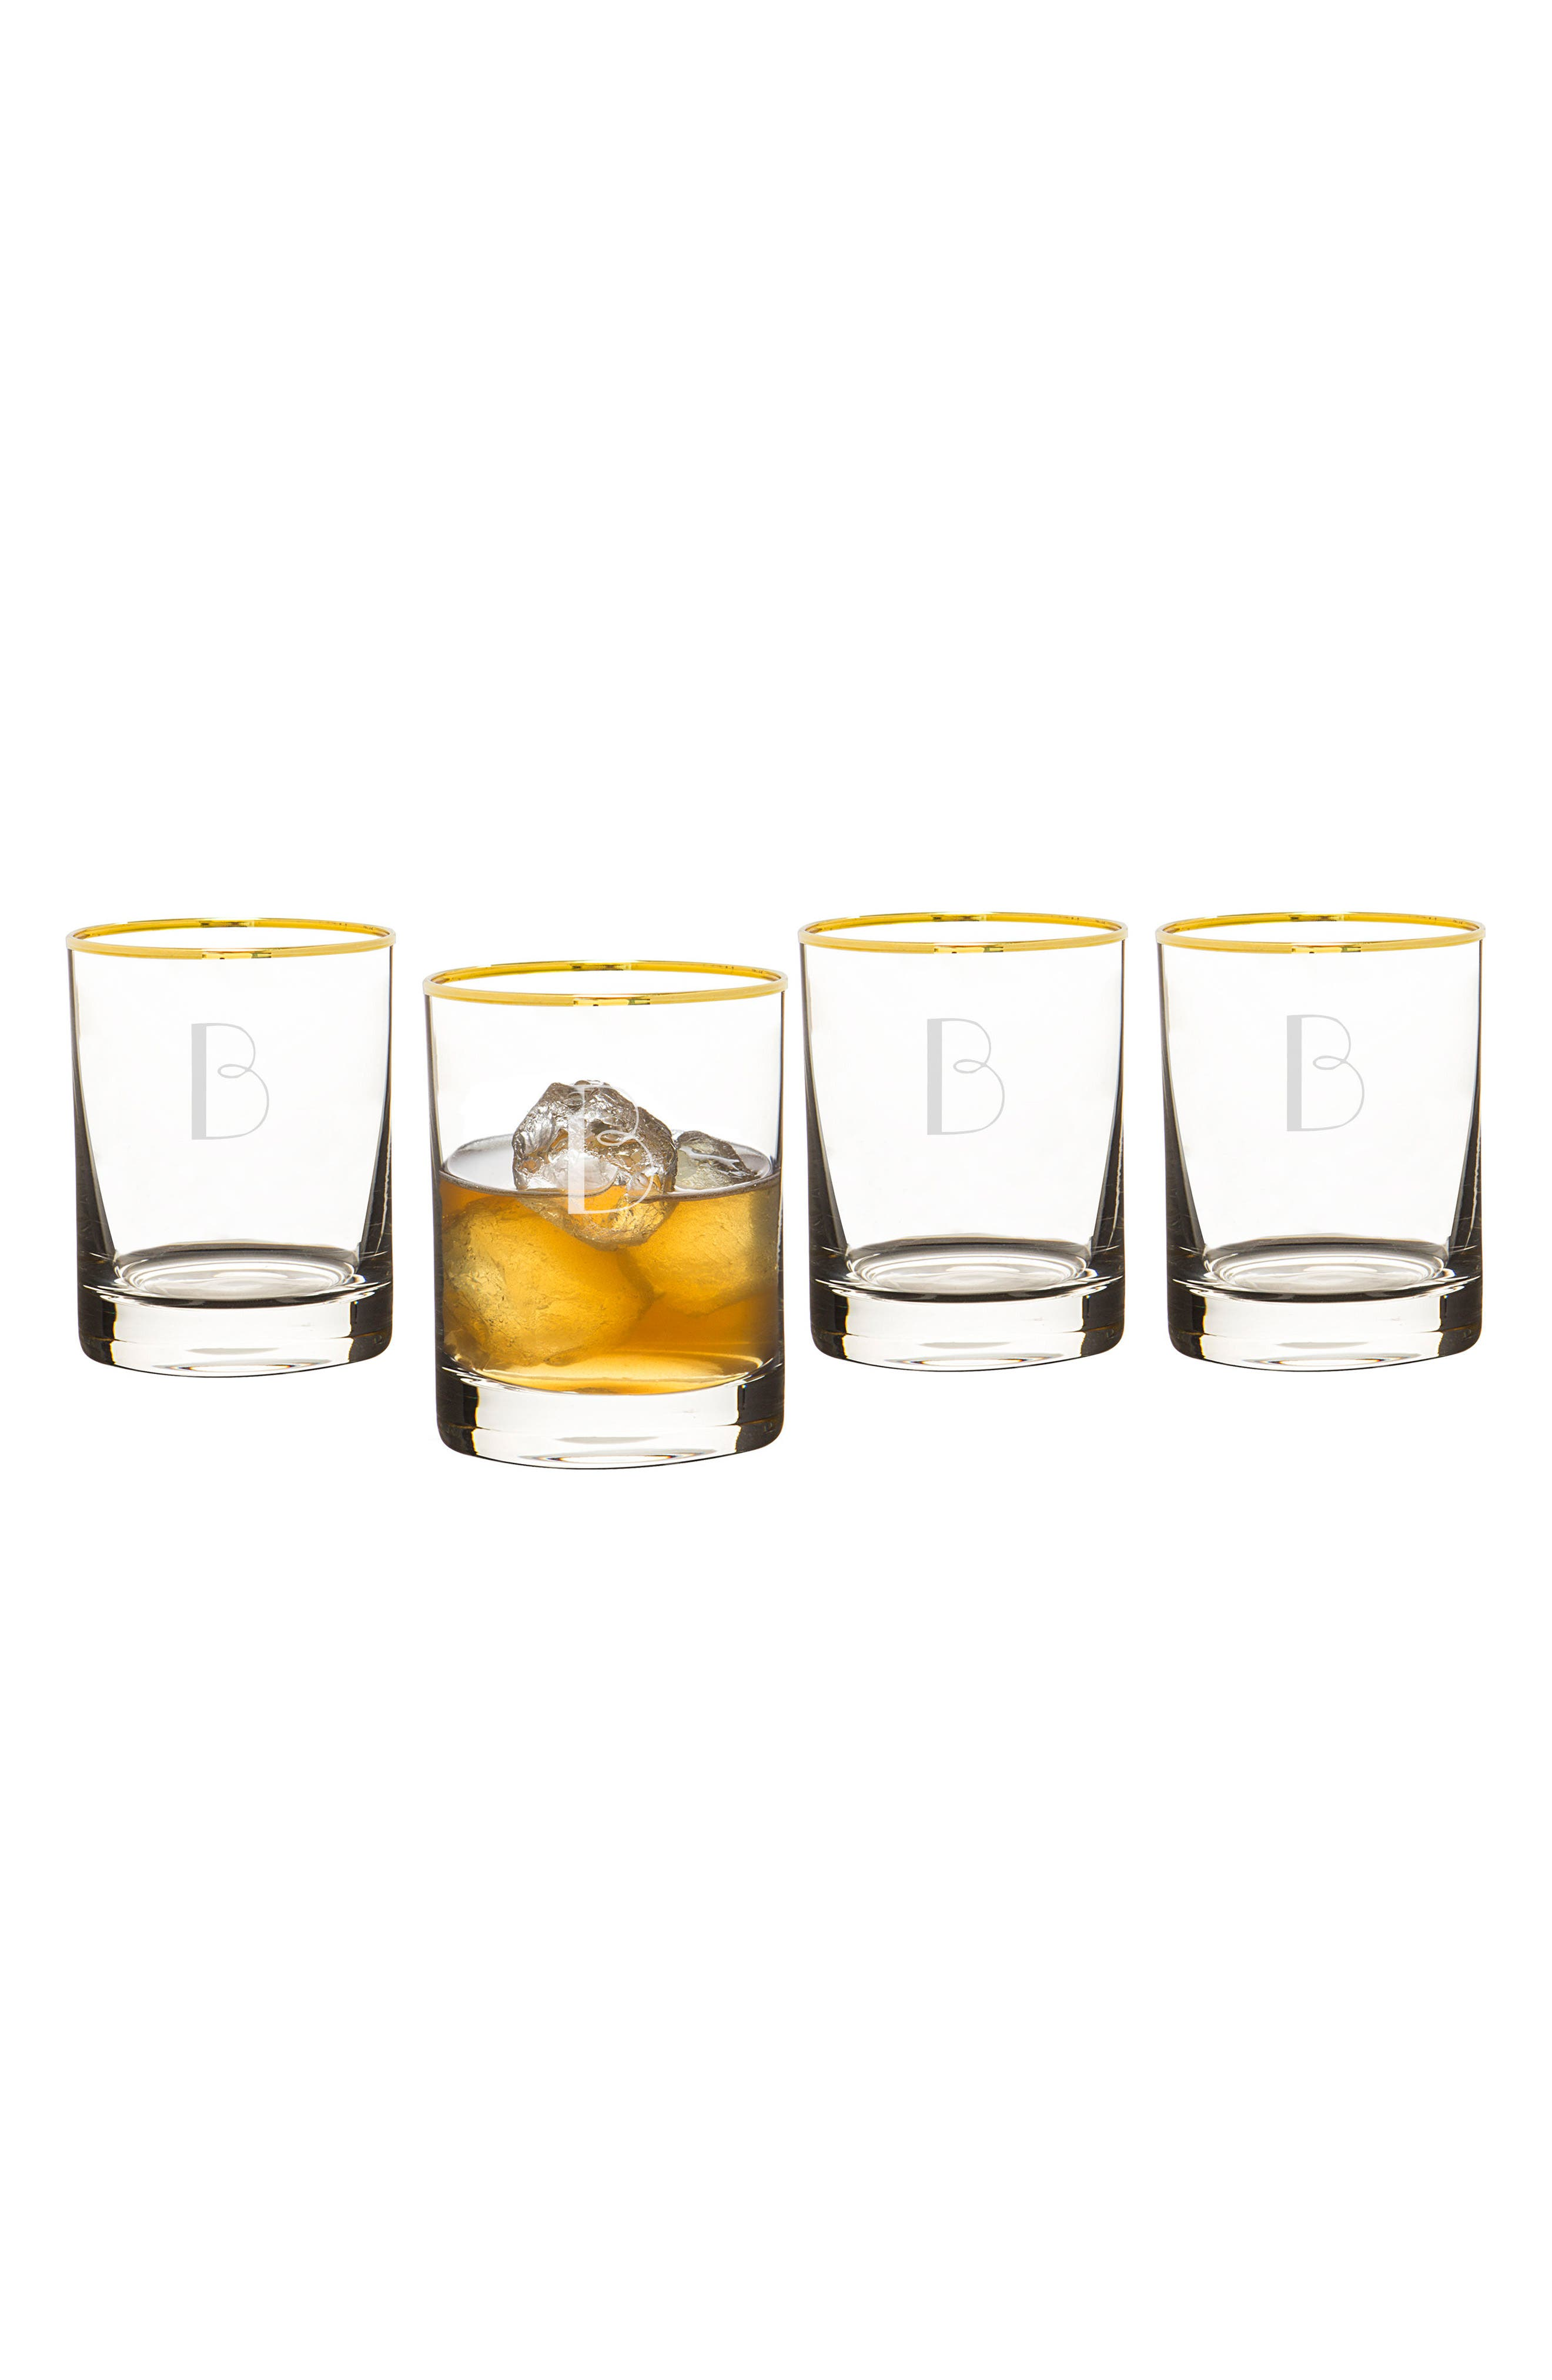 Monogram Set of 4 Double Old Fashioned Glasses,                         Main,                         color, White - B